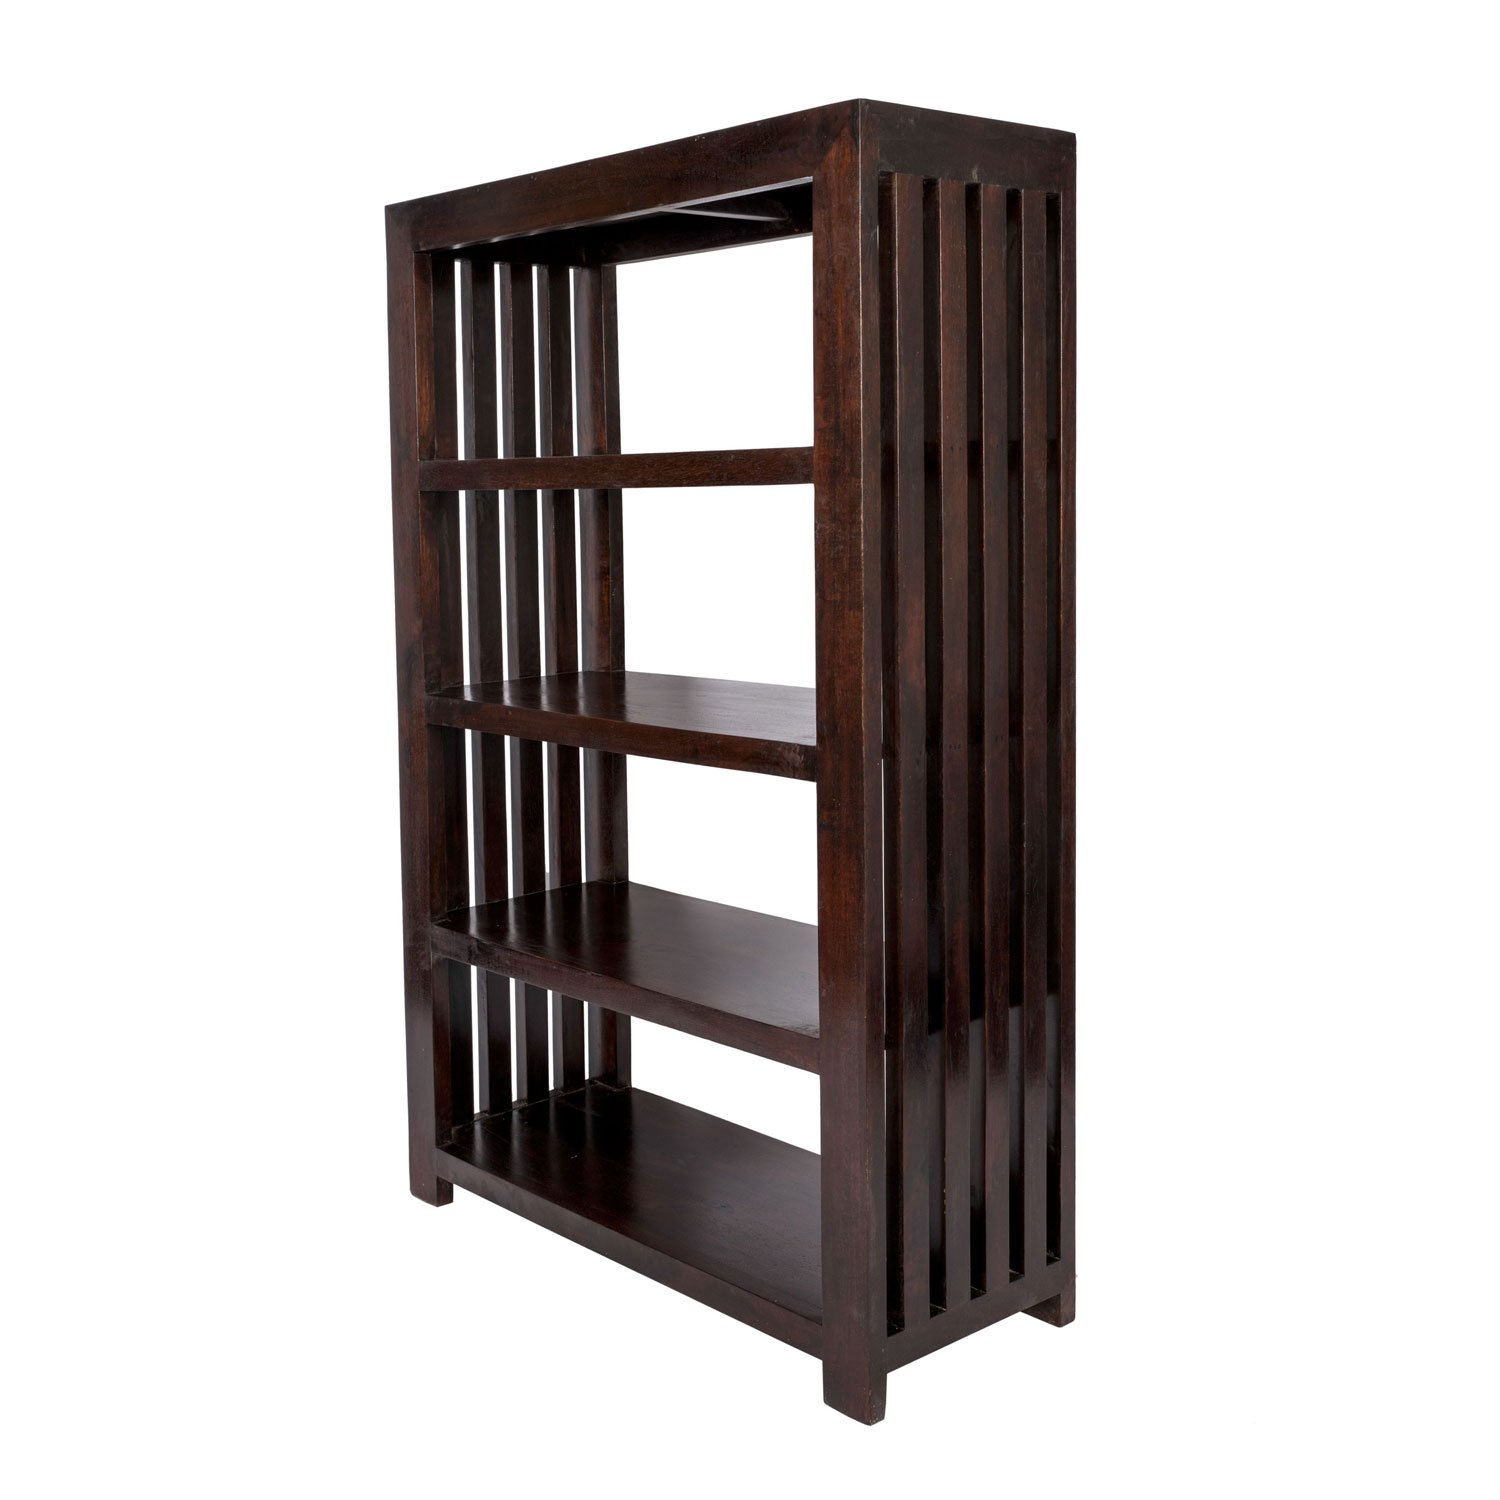 care now uk buy bookcase instructions wide walnut veneer hopkins at habitat